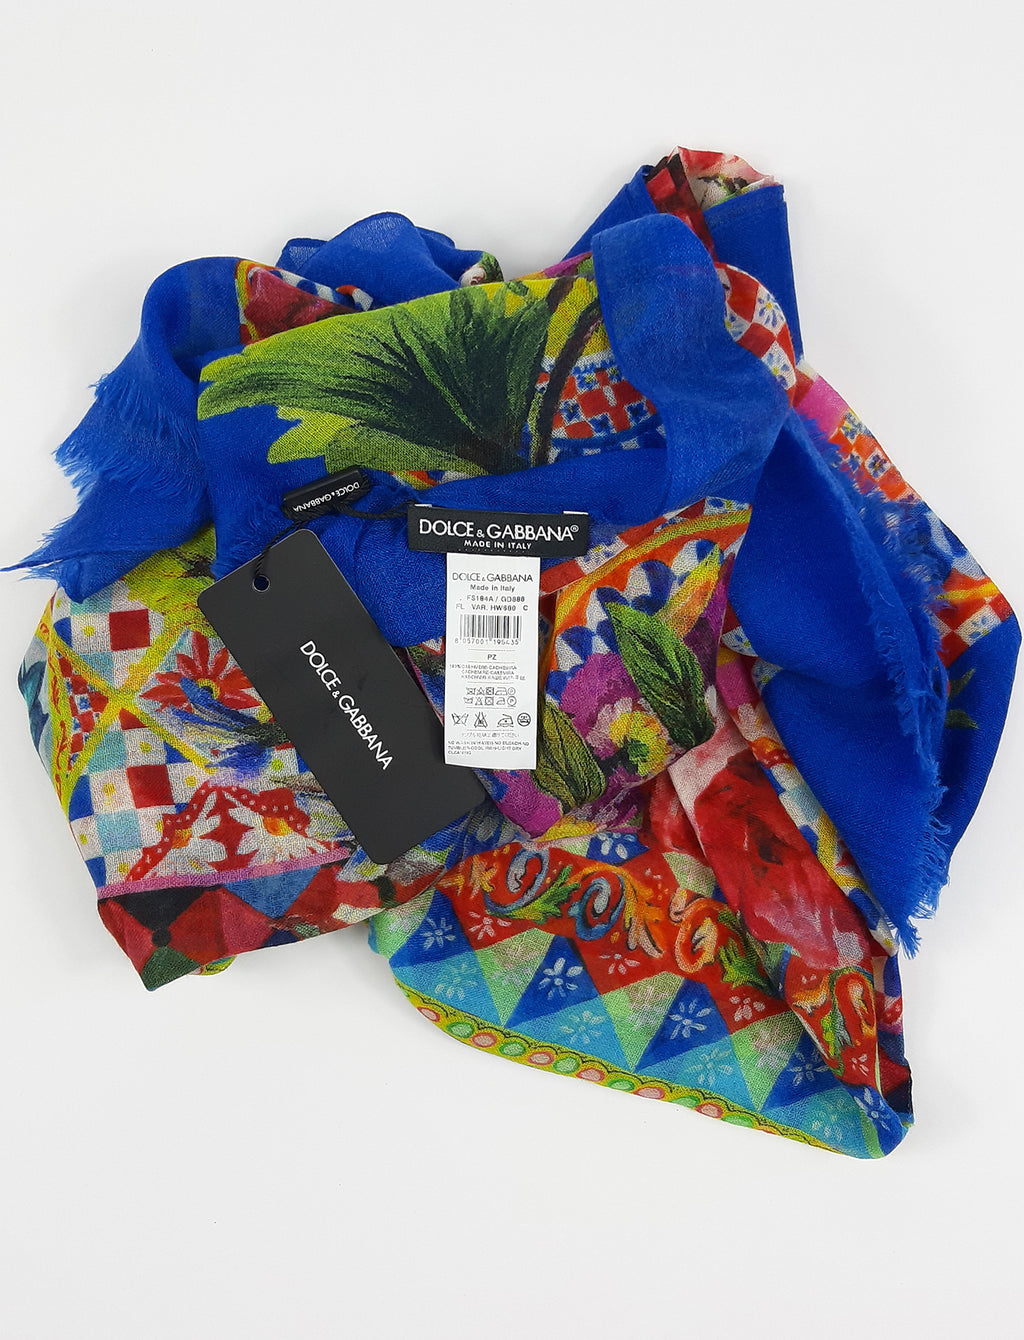 Dolce & Gabbana Silk Scarf in Blues